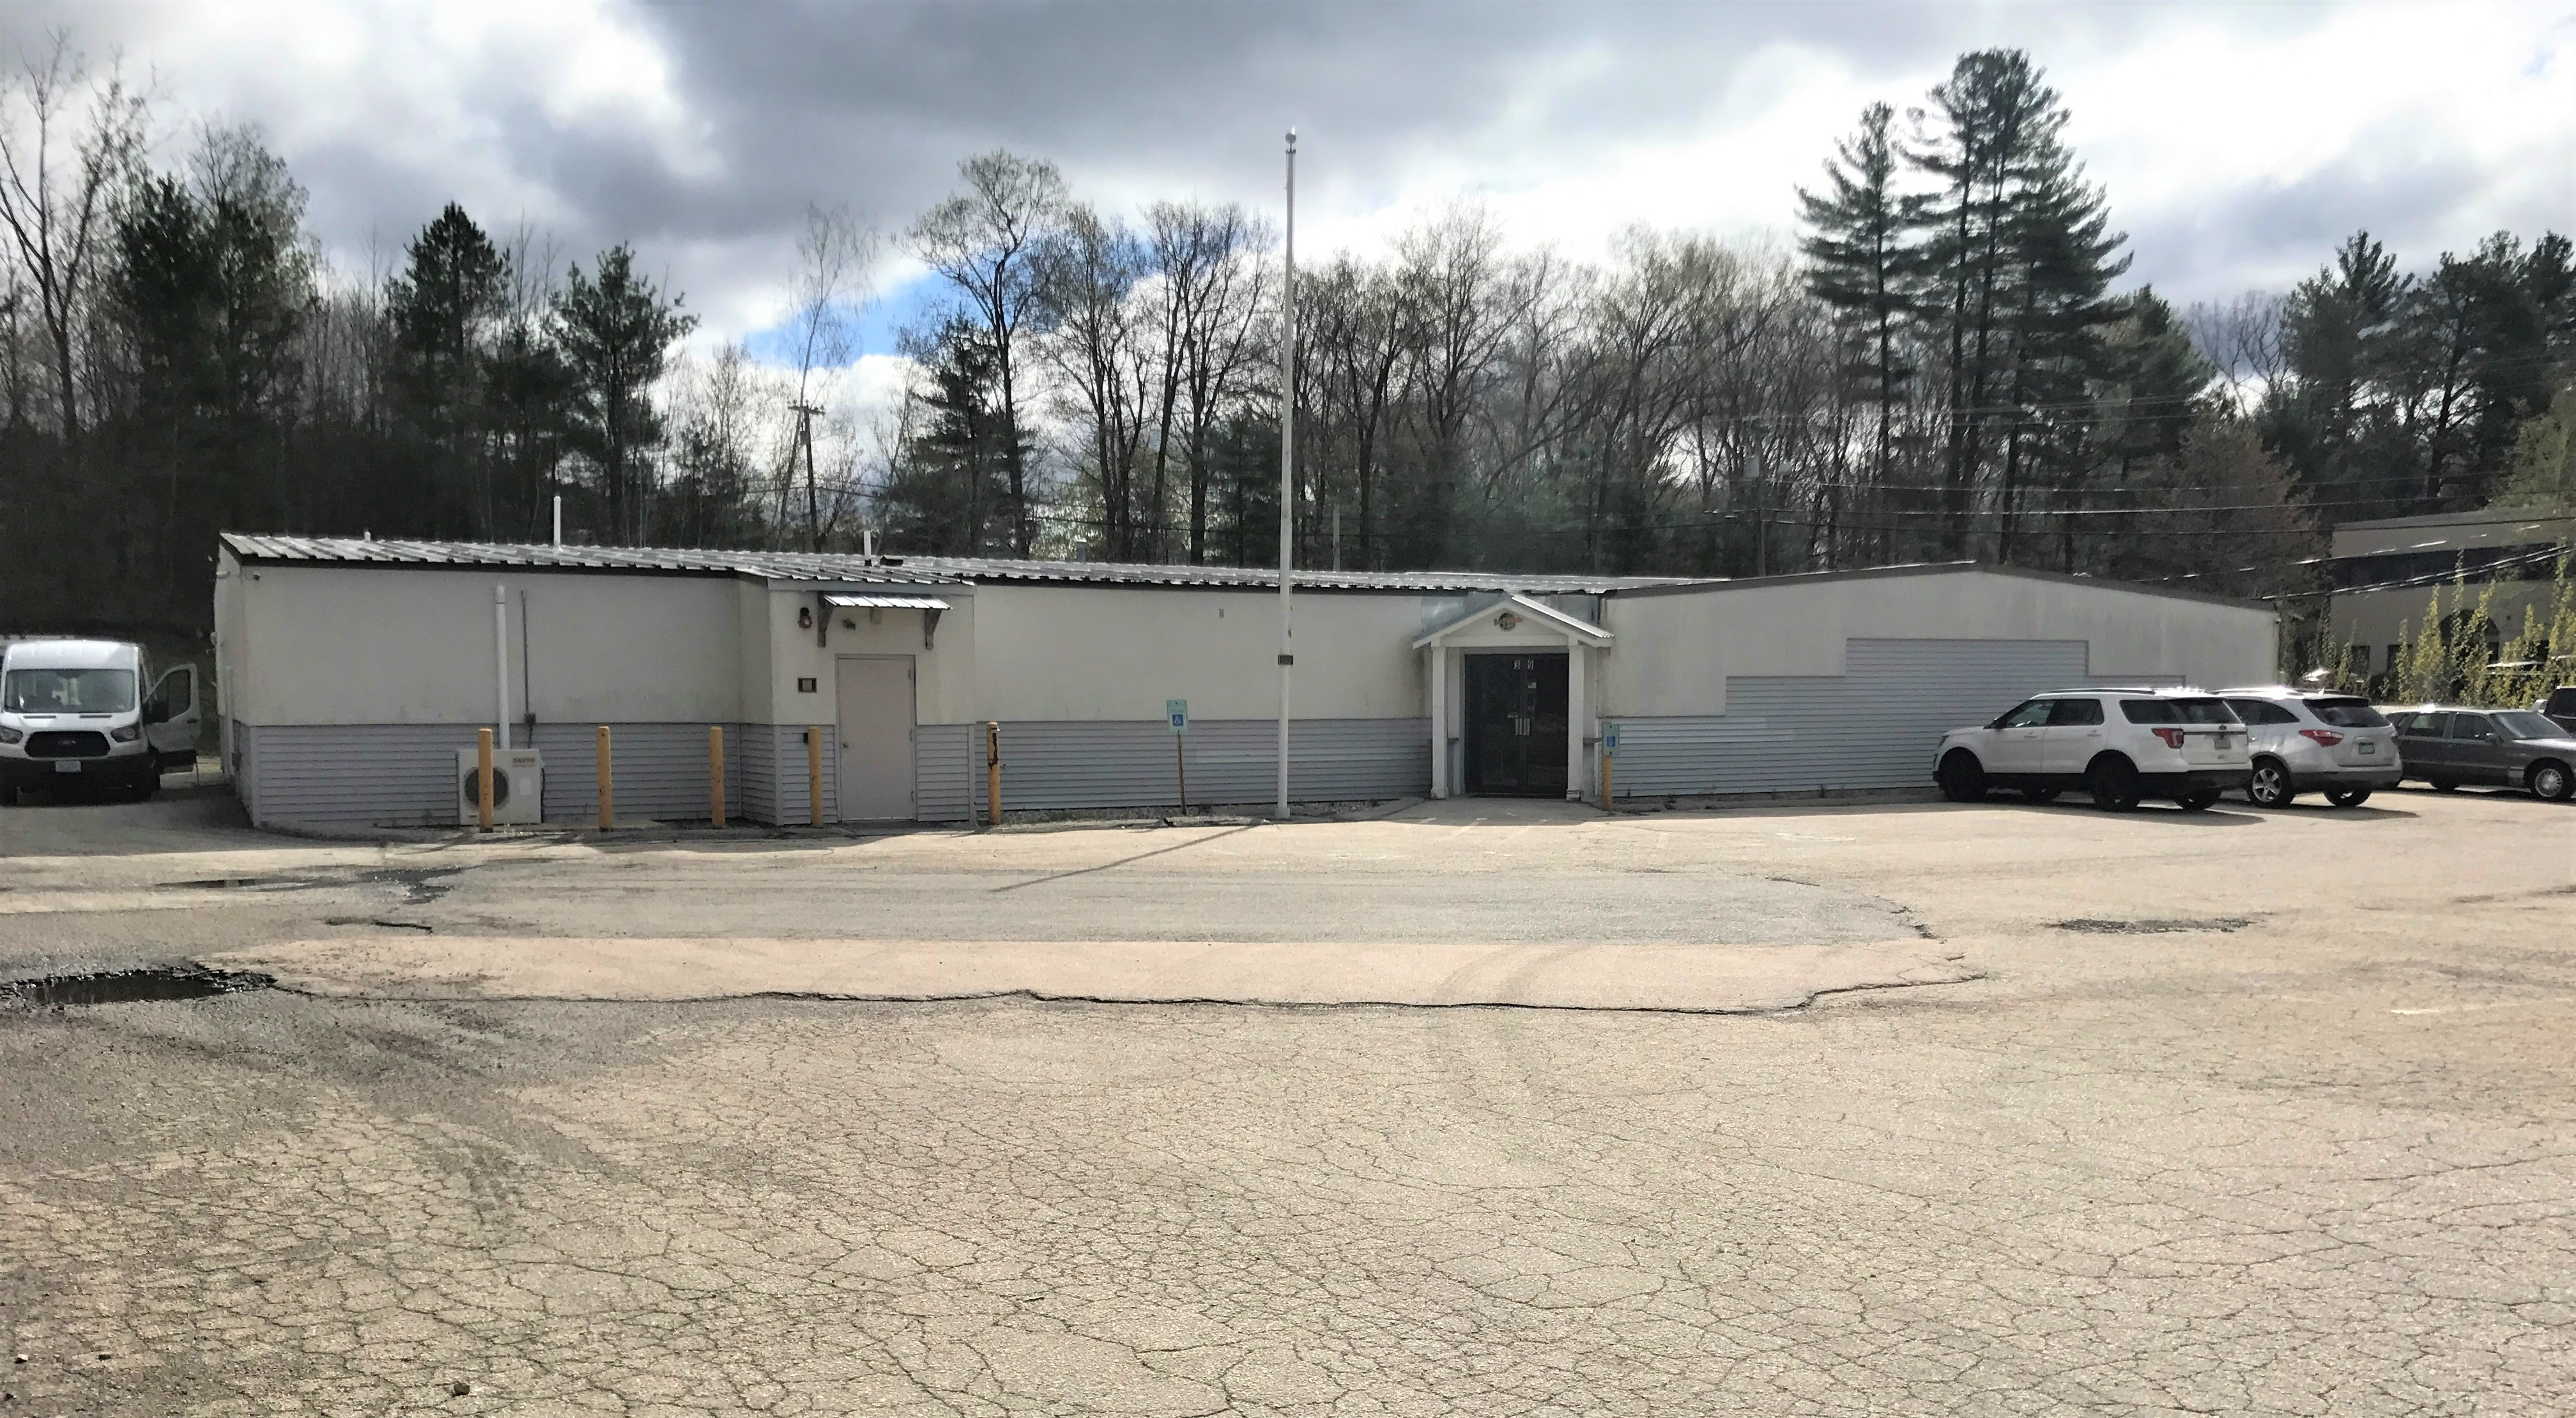 39 Londonderry Turnpike, Hooksett, NH For Sale or Lease